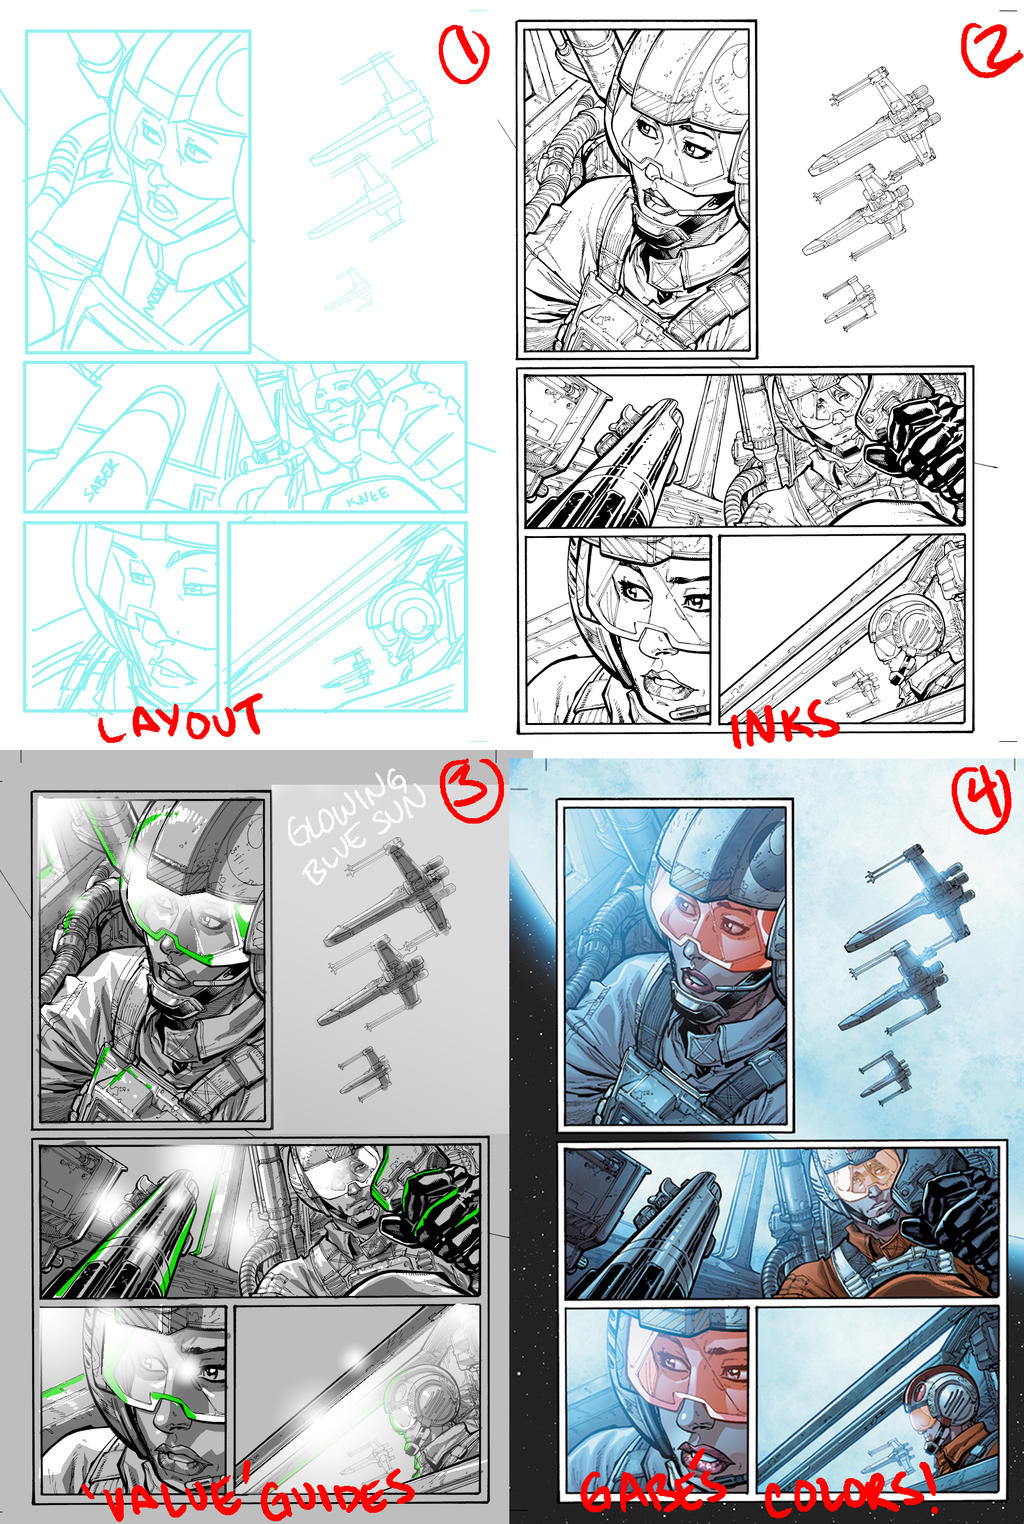 Star Wars page process by Chuckdee